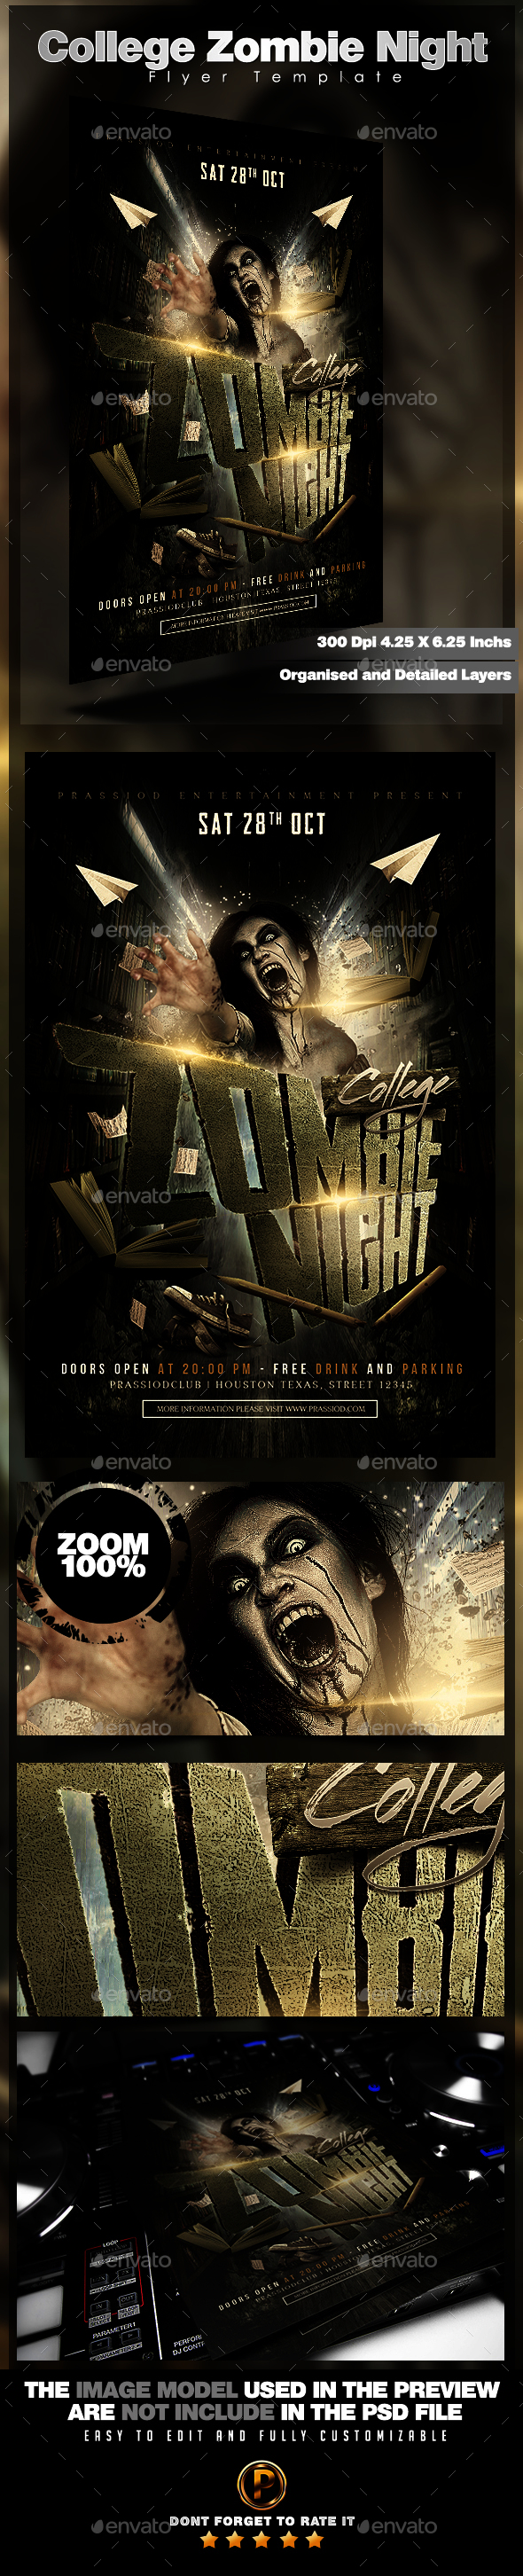 College Zombie Night Flyer Template - Events Flyers